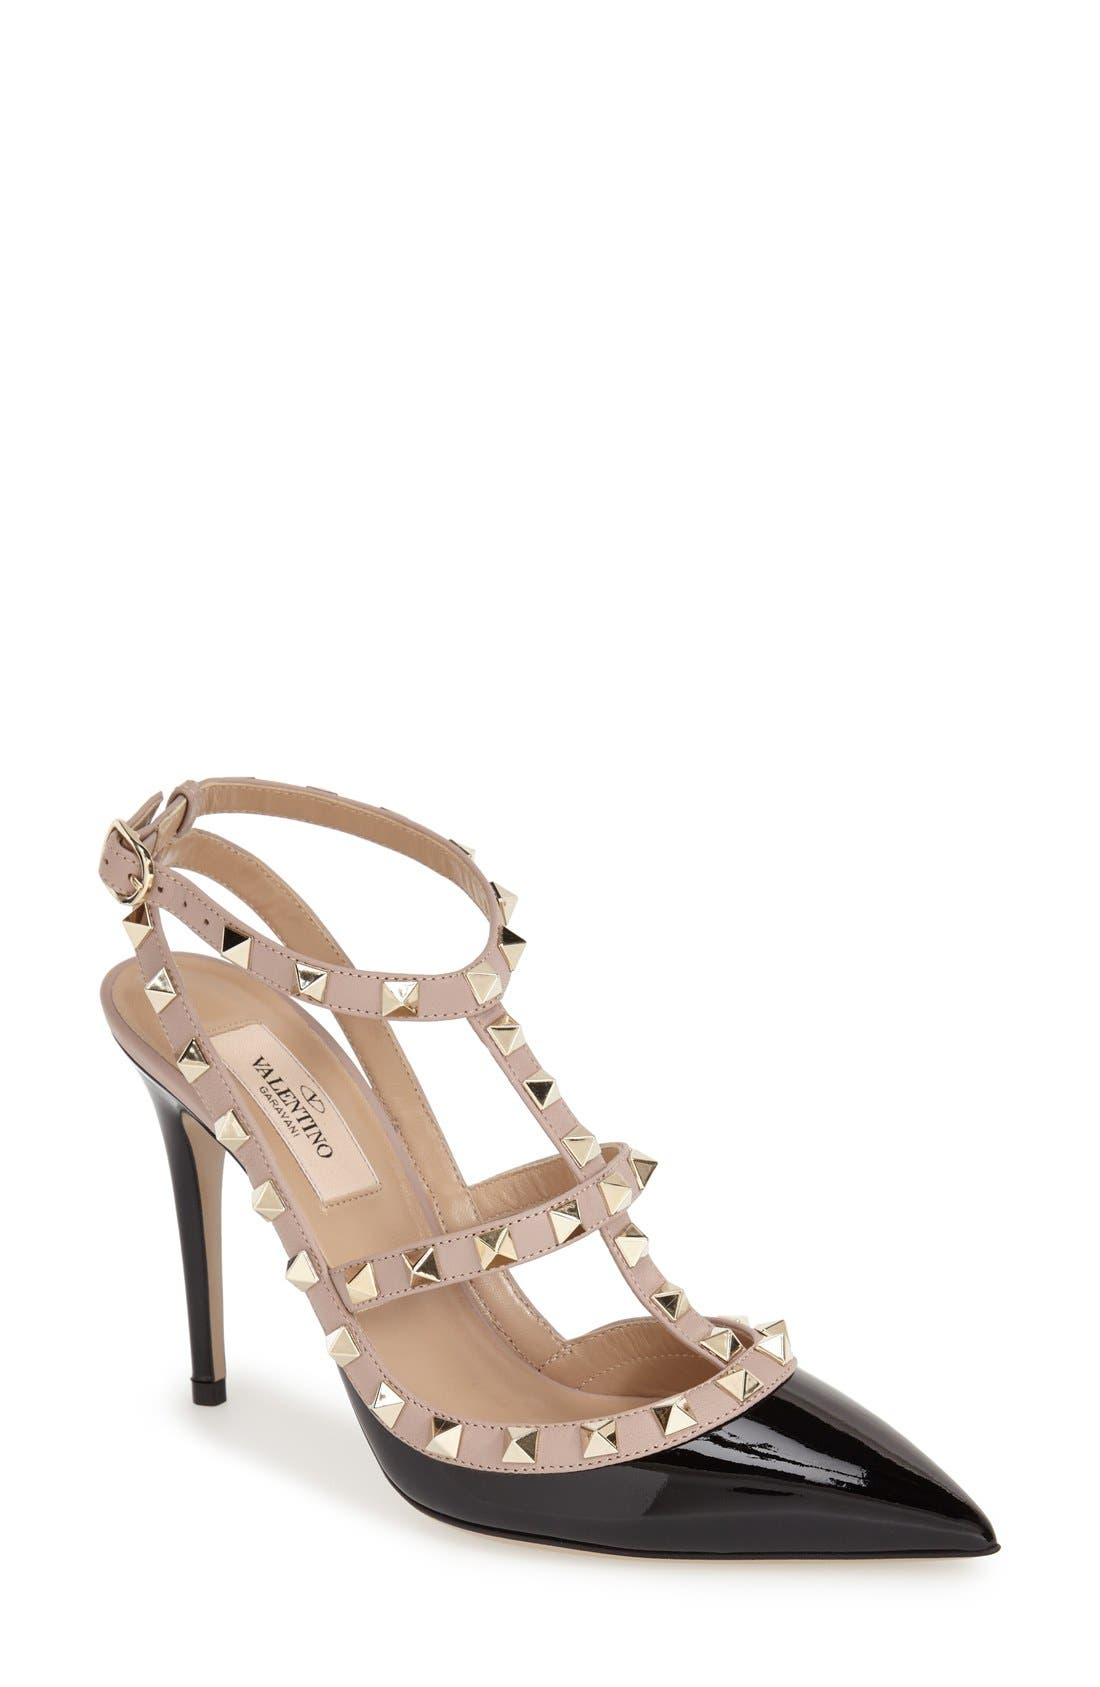 Rockstud T-Strap Pump,                             Main thumbnail 1, color,                             Black/ Blush Patent